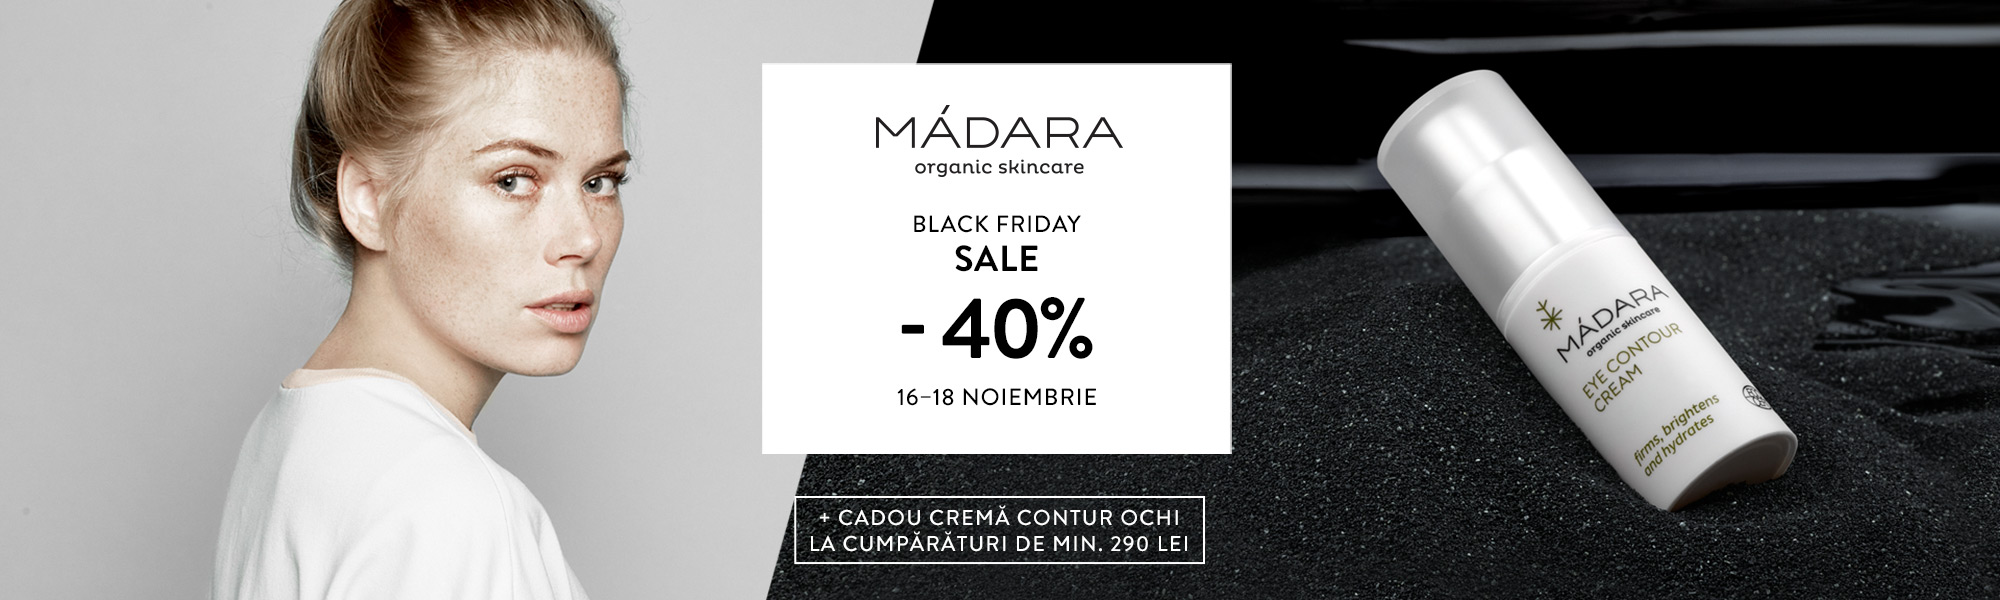 Madara Black Friday